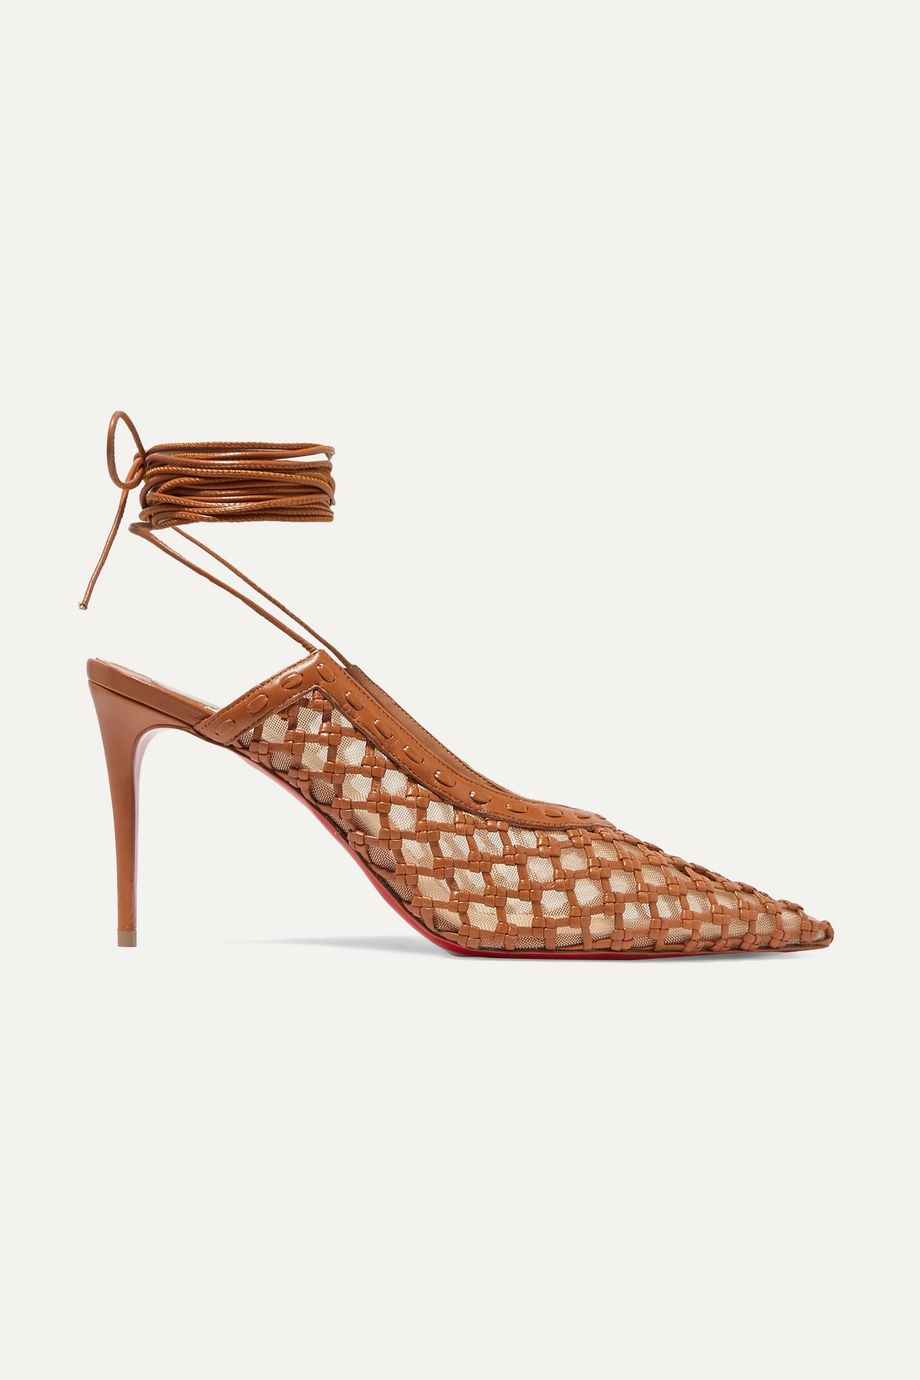 + Roland Mouret Cage and Curry mesh and woven leather pumps by Net-a-porter, available on net-a-porter.com for $1095 Kylie Jenner Shoes Exact Product